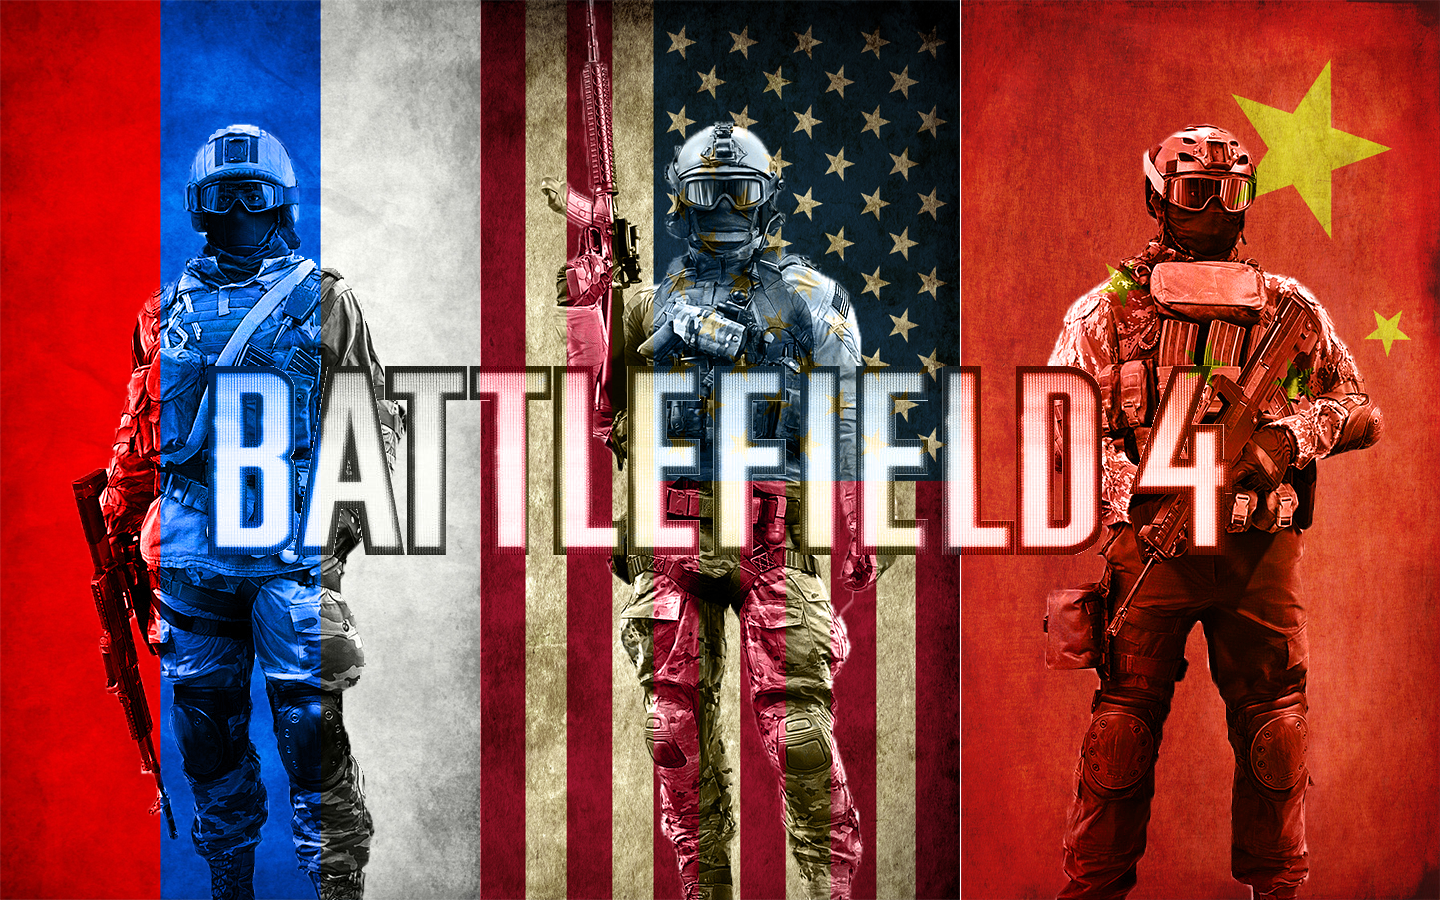 Bf4 assault w flags wallpaper by mistermasada on deviantart - Bf4 wallpaper ...